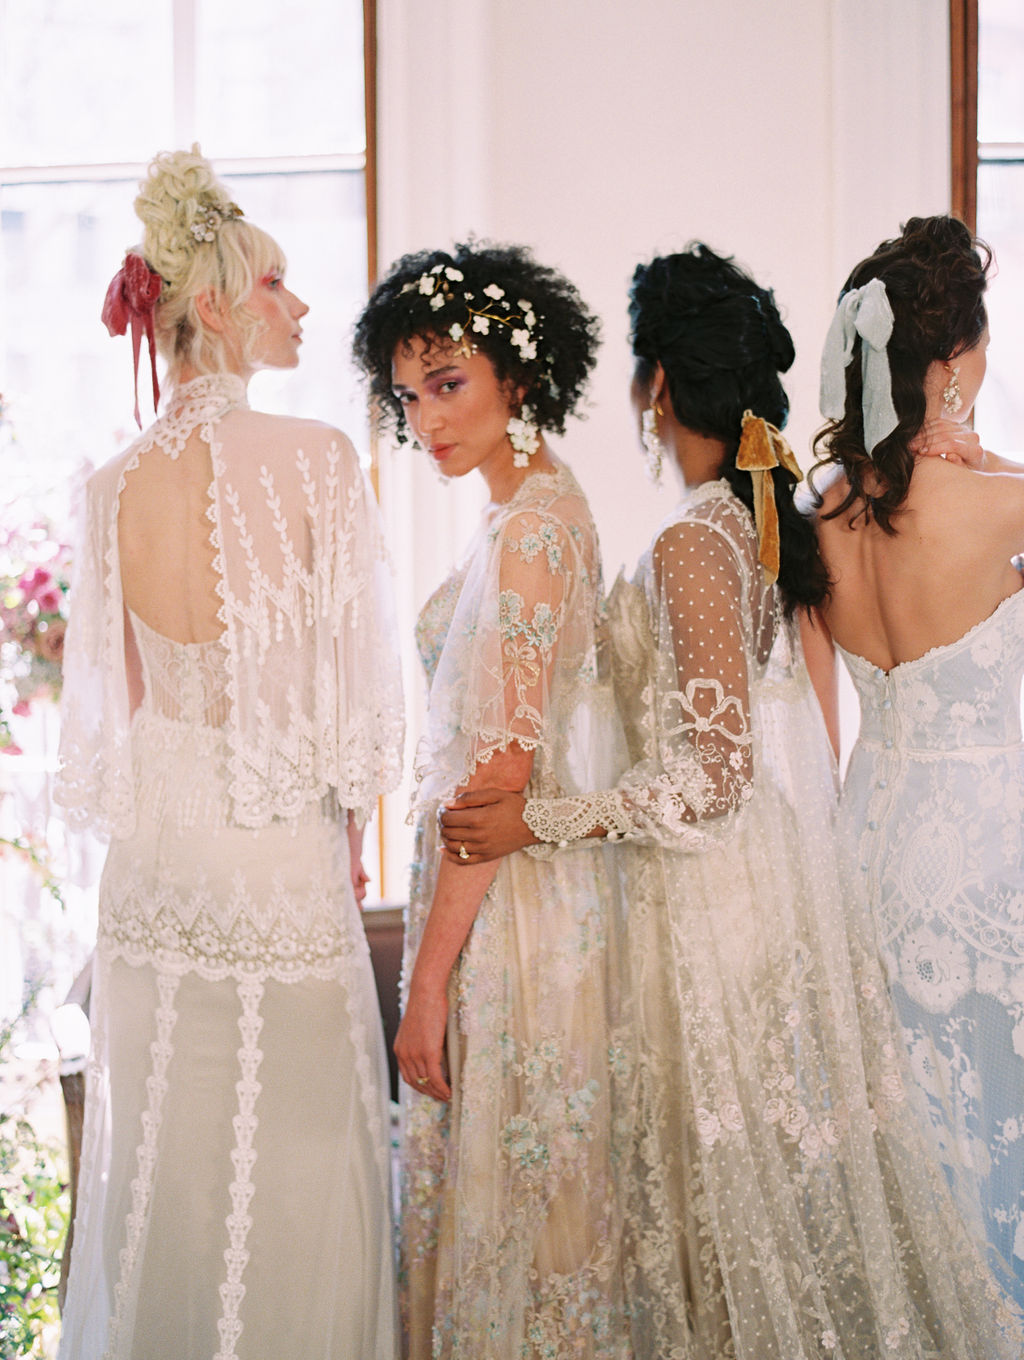 Claire Pettibone Timeless Wedding Dresses New York Bridal Fashion Week with East Made Co and Sophie Kaye Photography Spring 2019(46of353).jpg